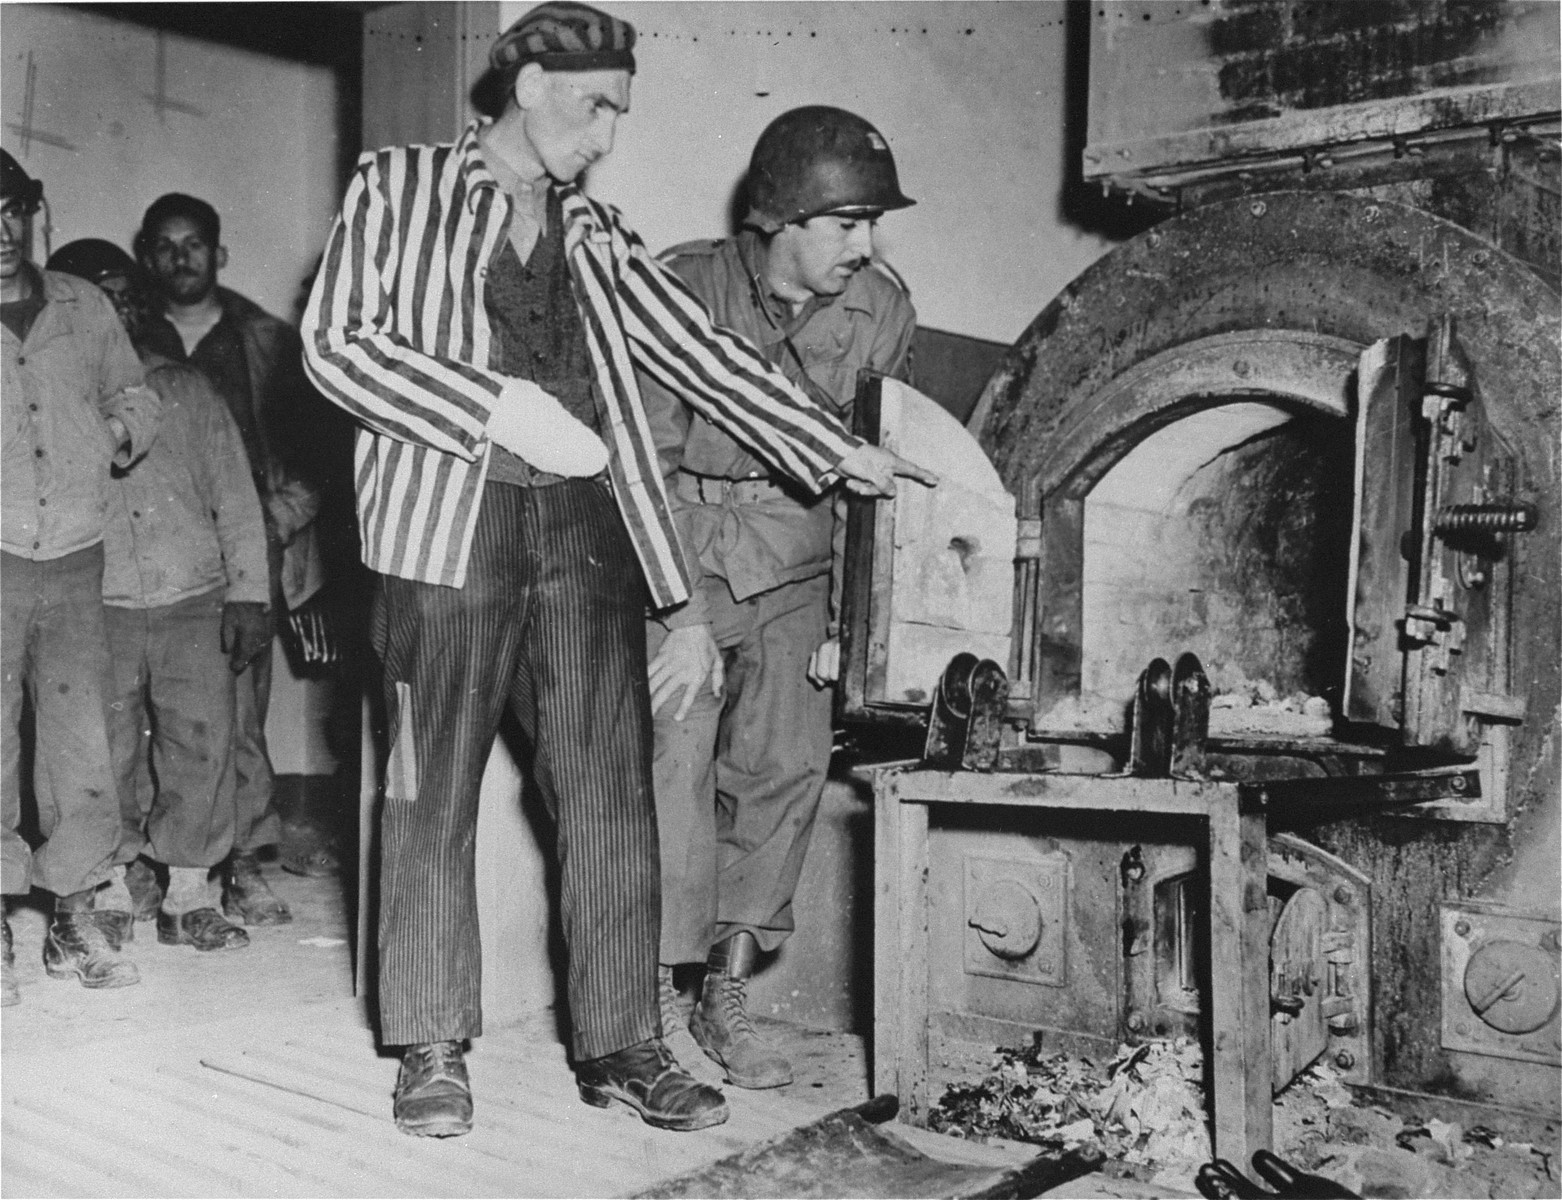 A Polish survivor shows U.S. soldier John L. Lyndon the crematorium ovens used to burn corpses in Dora-Mittelbau.